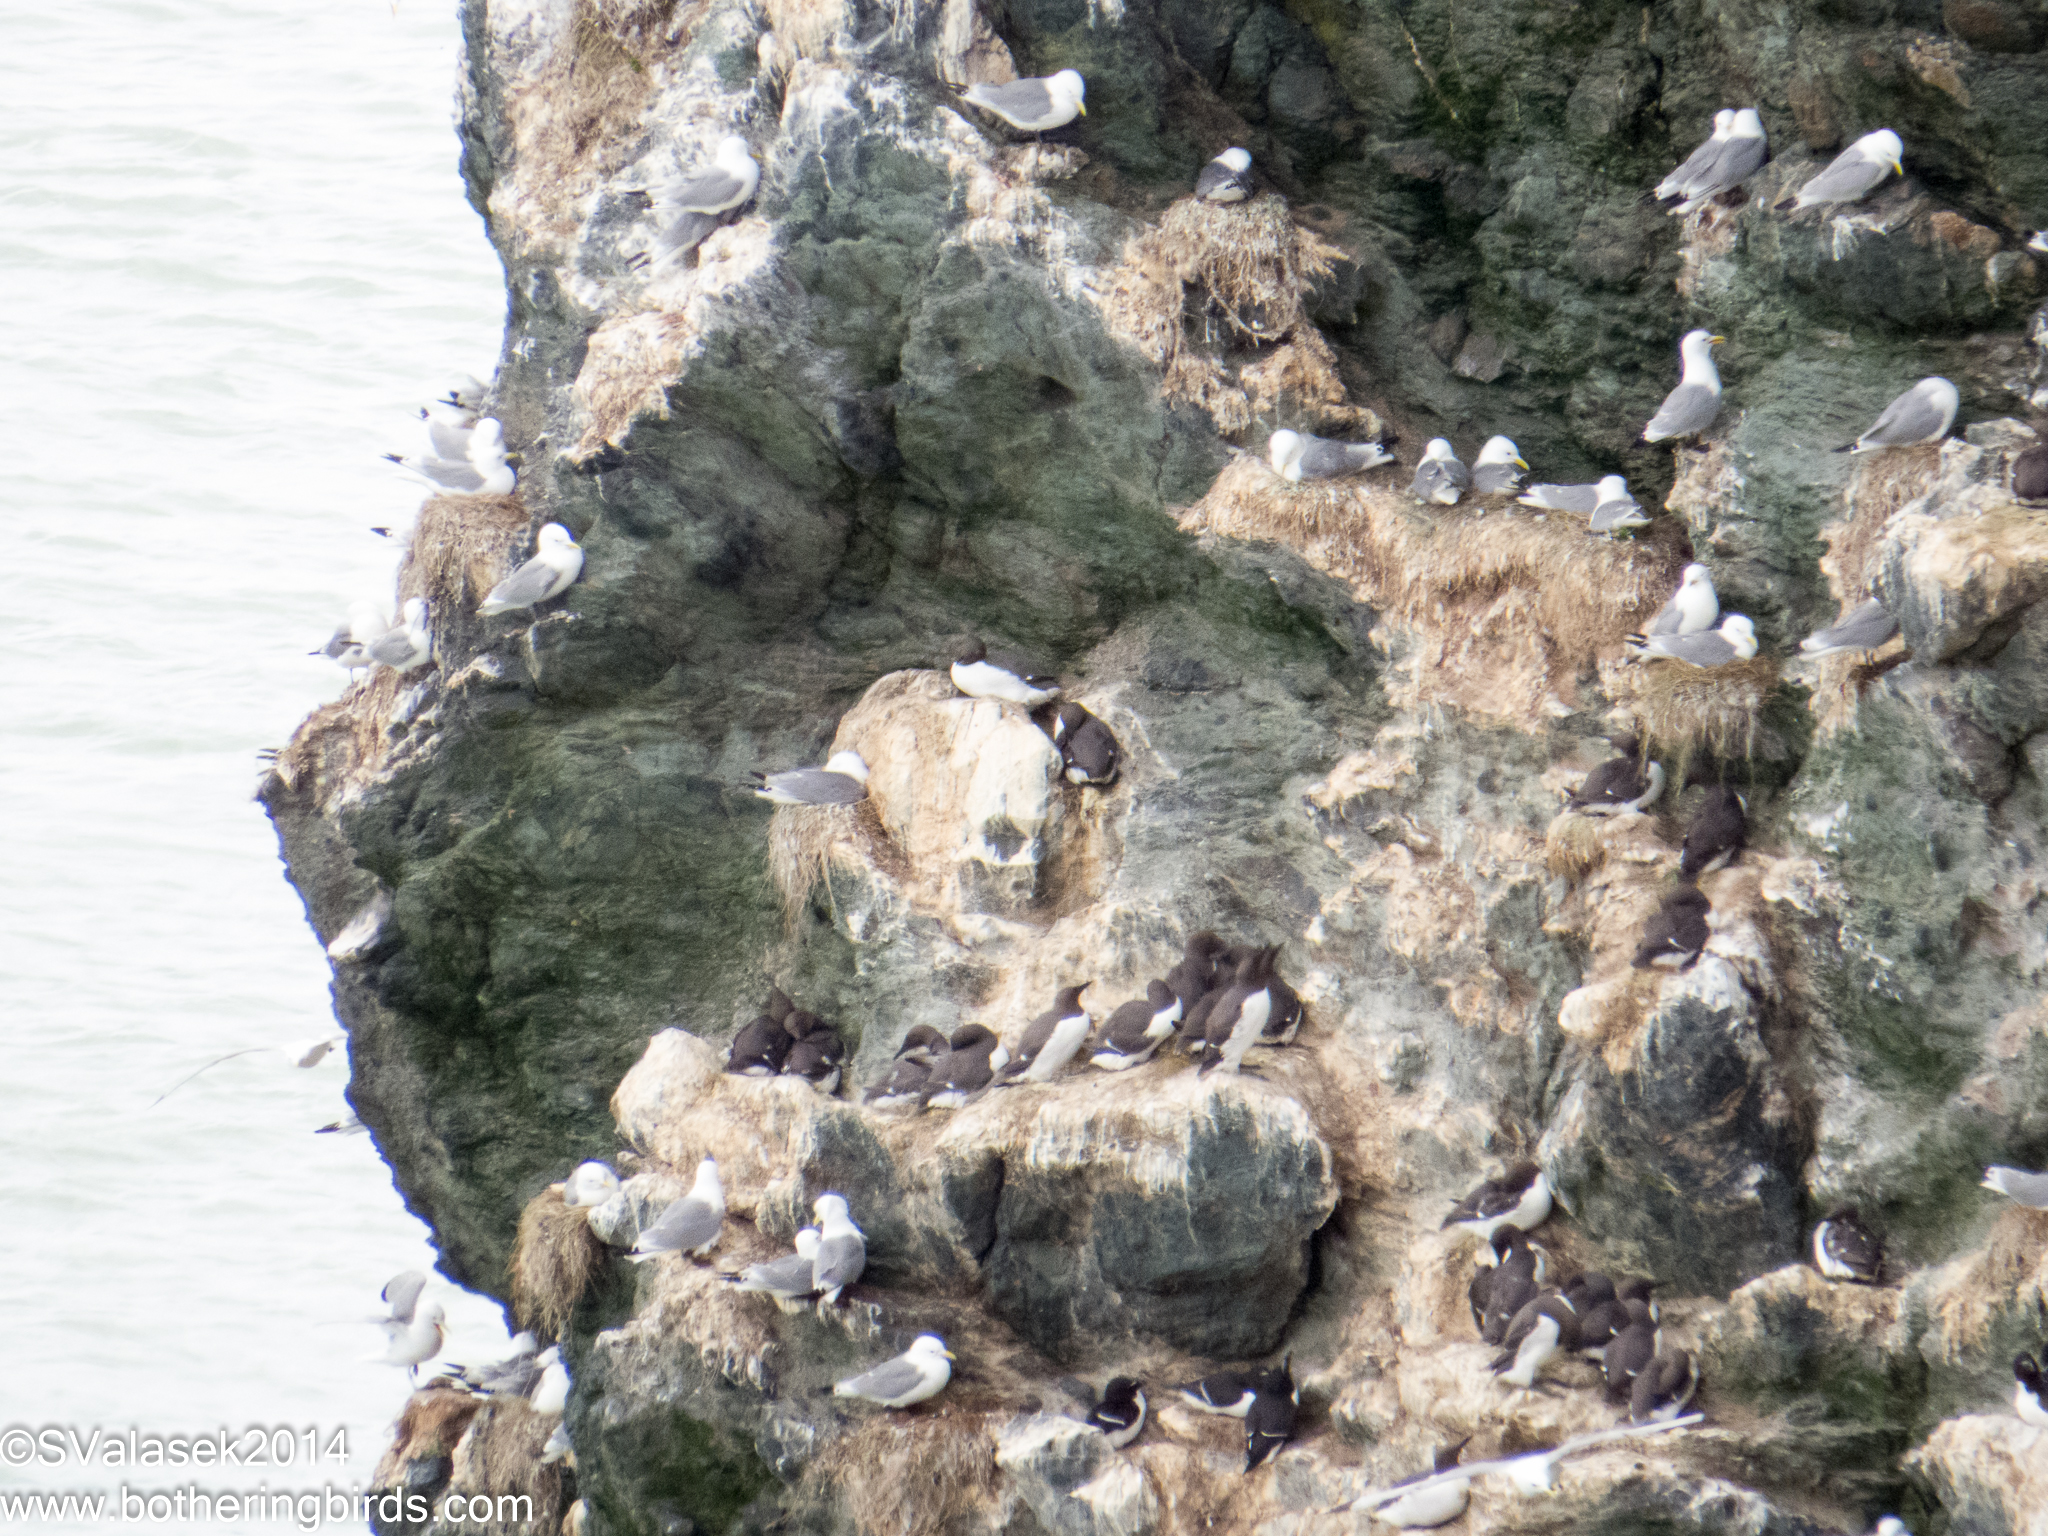 Black-Legged Kittiwake, Razorbill and Guillemot nesting